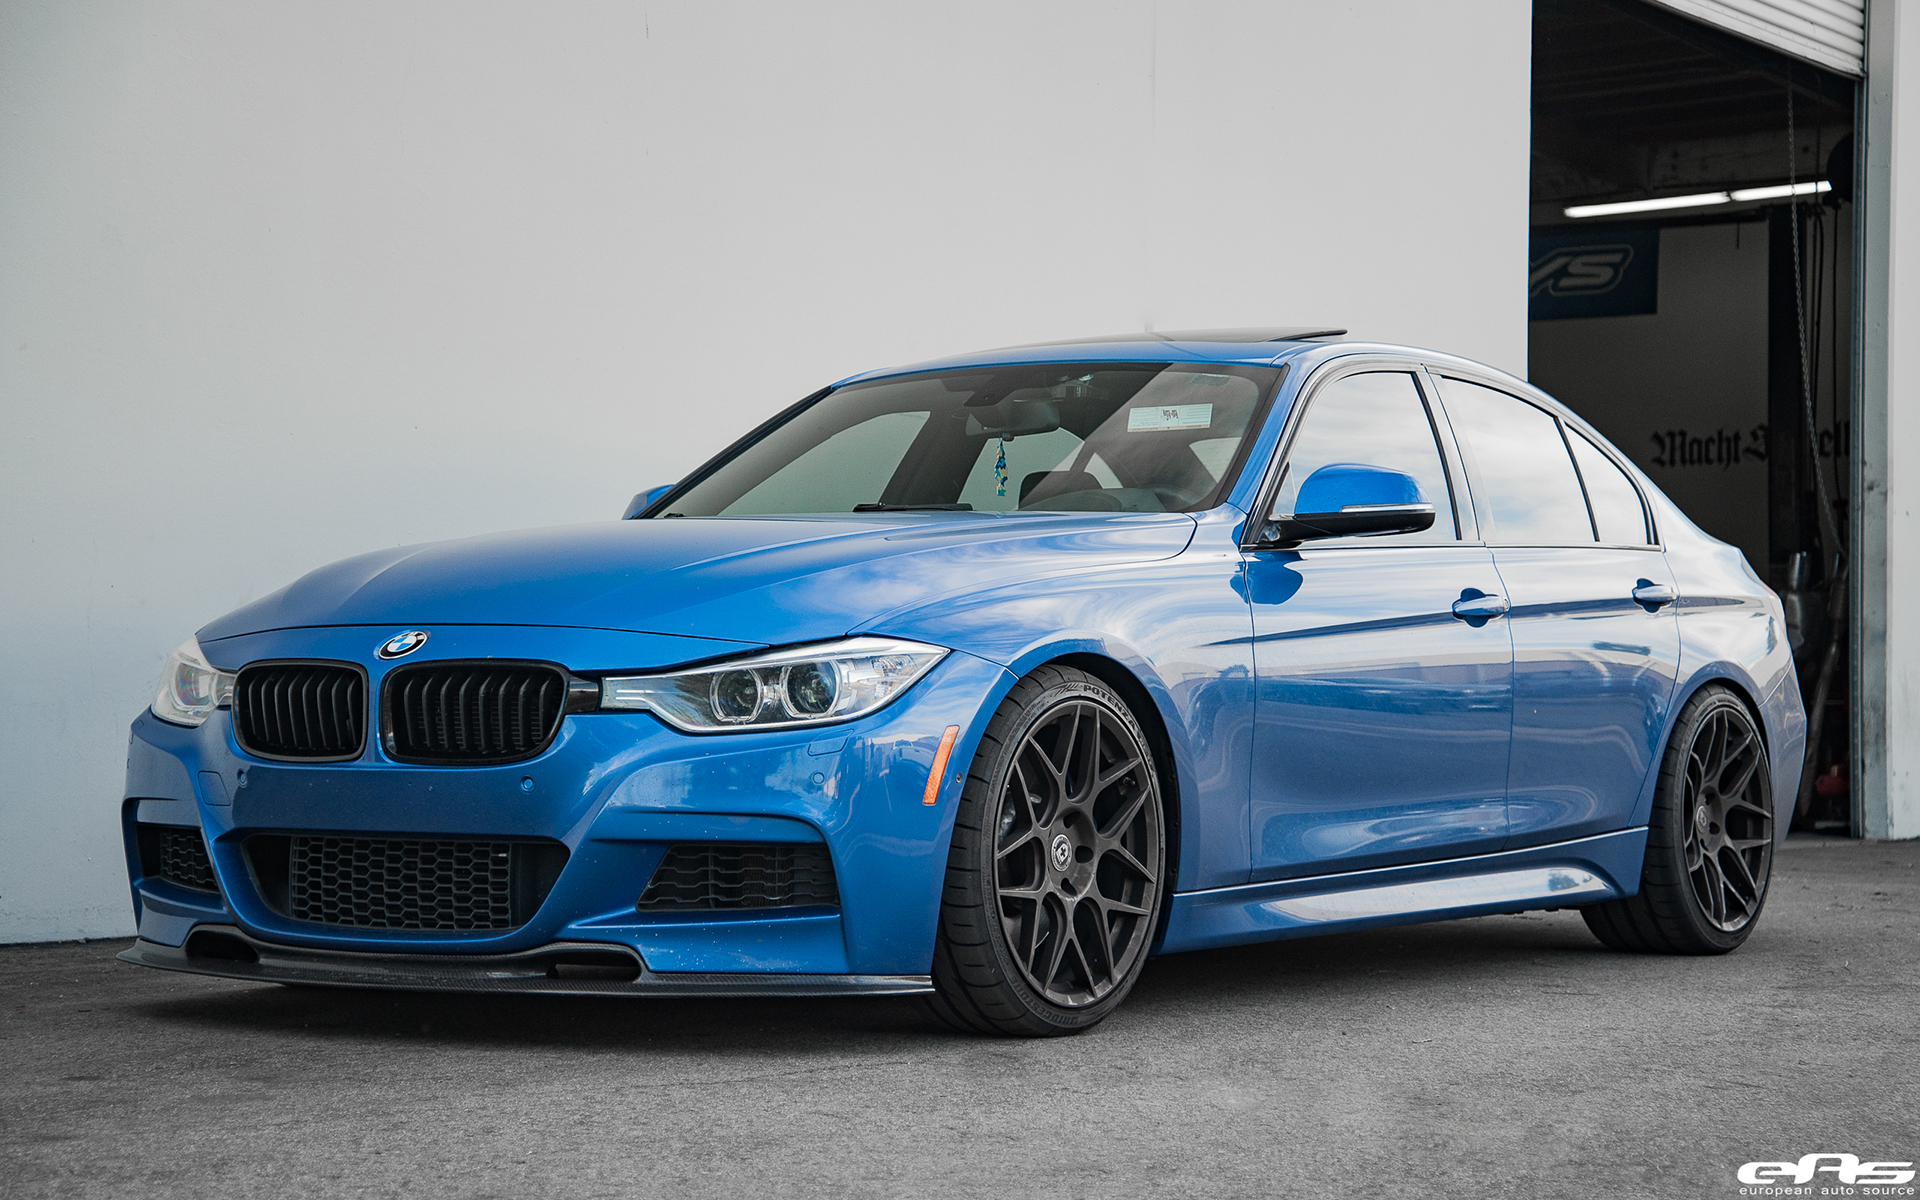 Estoril Blue Bmw F30 335i Project By European Auto Source